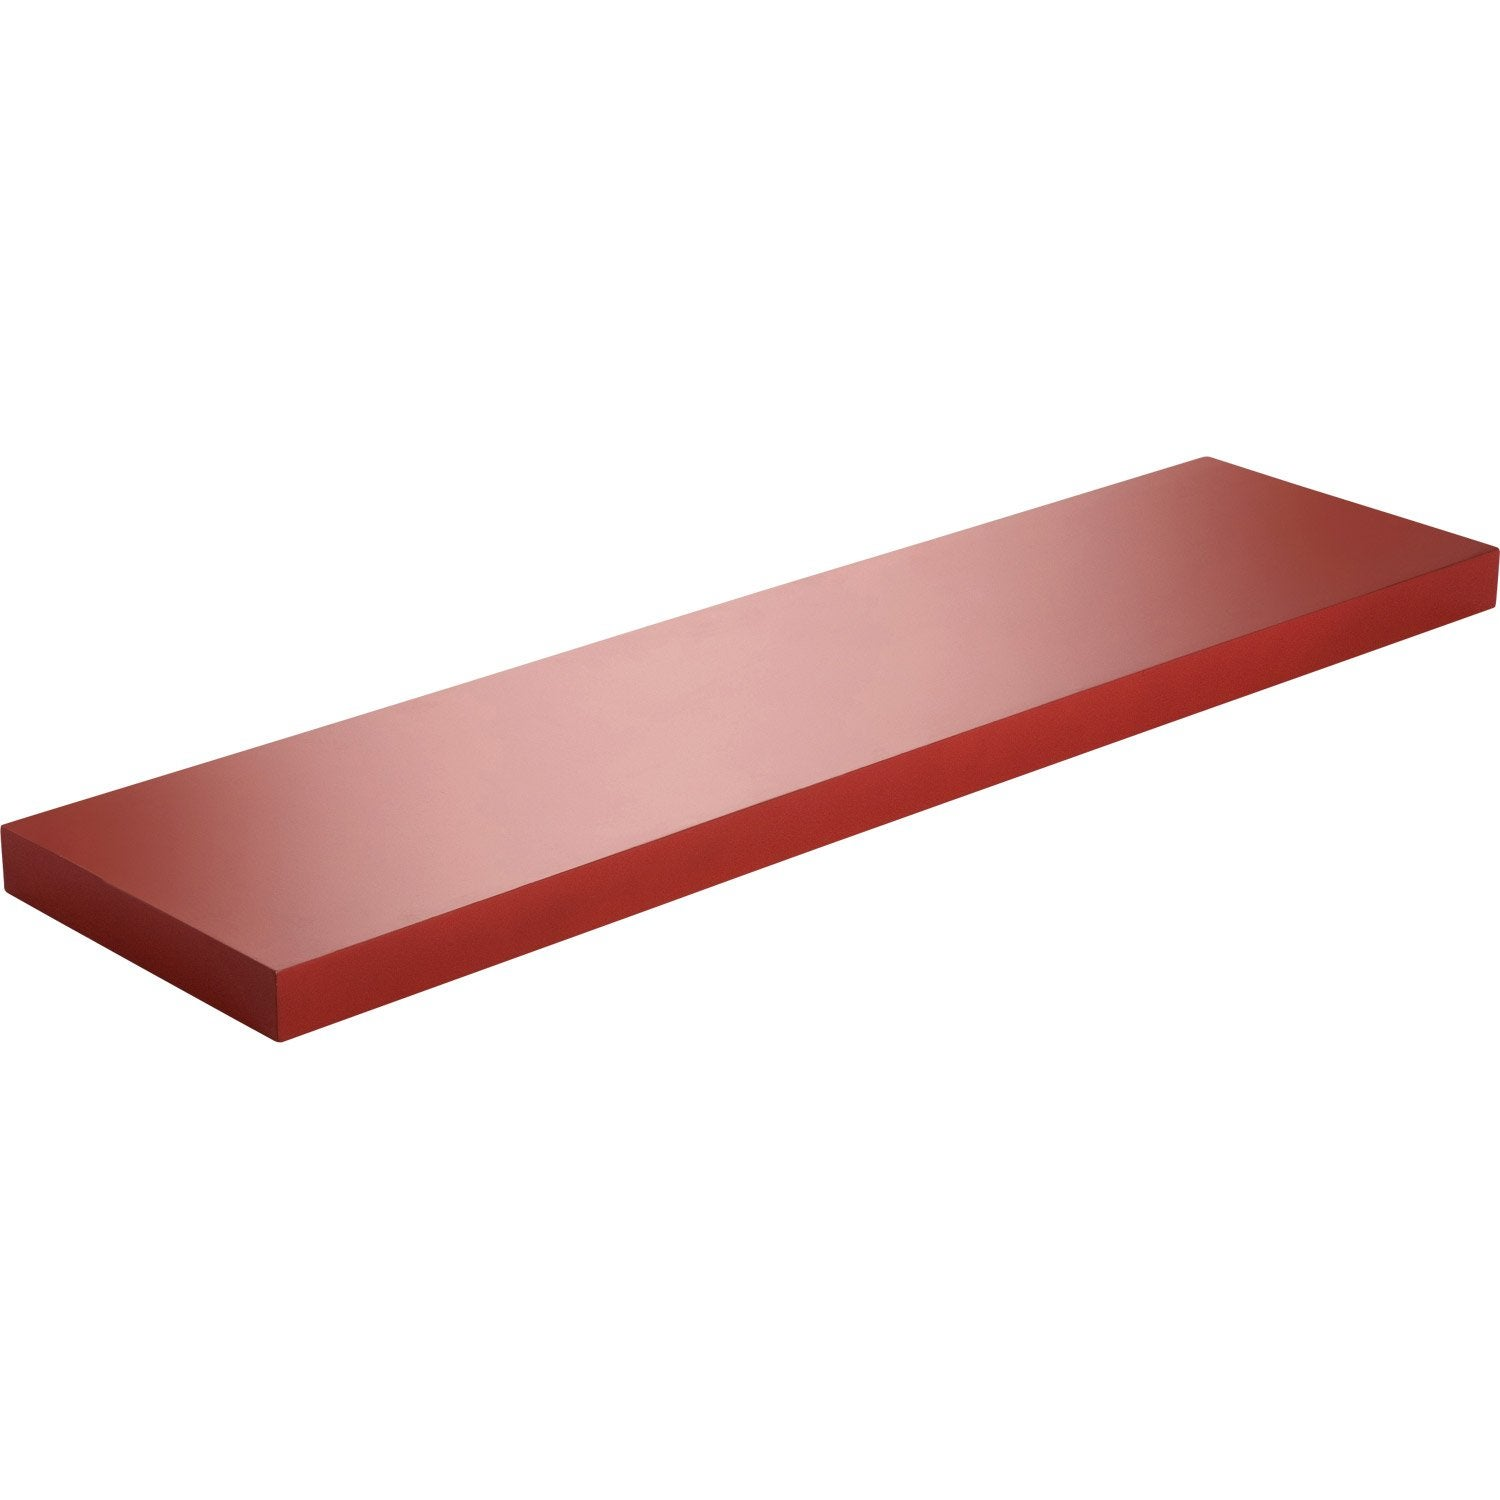 Etag re murale rouge rouge n 3 spaceo l 90 x p 23 5 cm ep for Etagere 50 cm de large